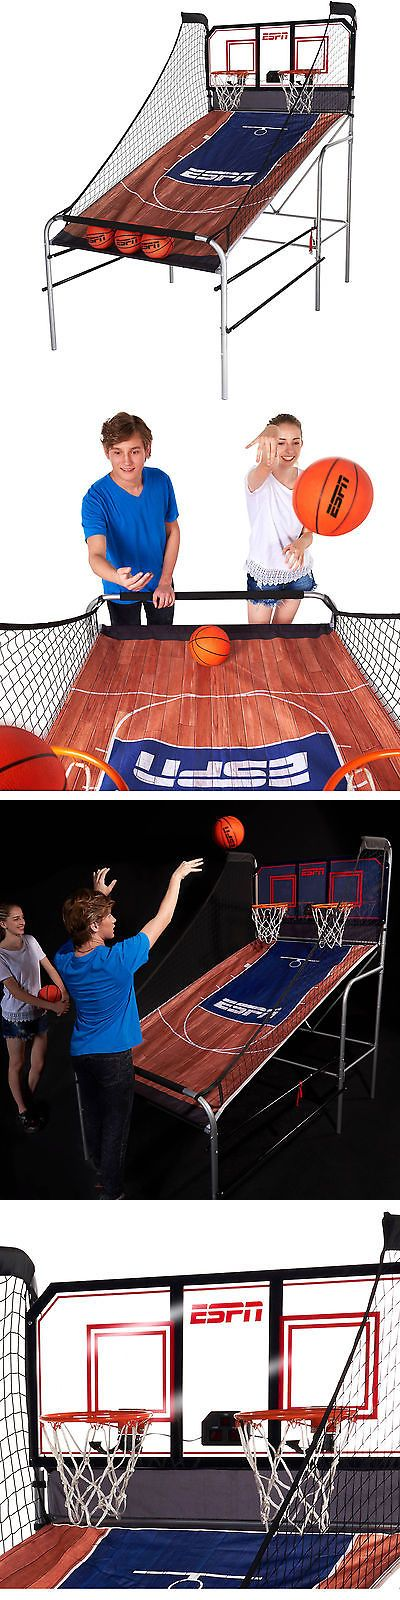 Other Indoor Games 36278: New Espn 2-Player Basketball Game With Authentic Pc Backboard Electronic Arcade -> BUY IT NOW ONLY: $156.99 on eBay!